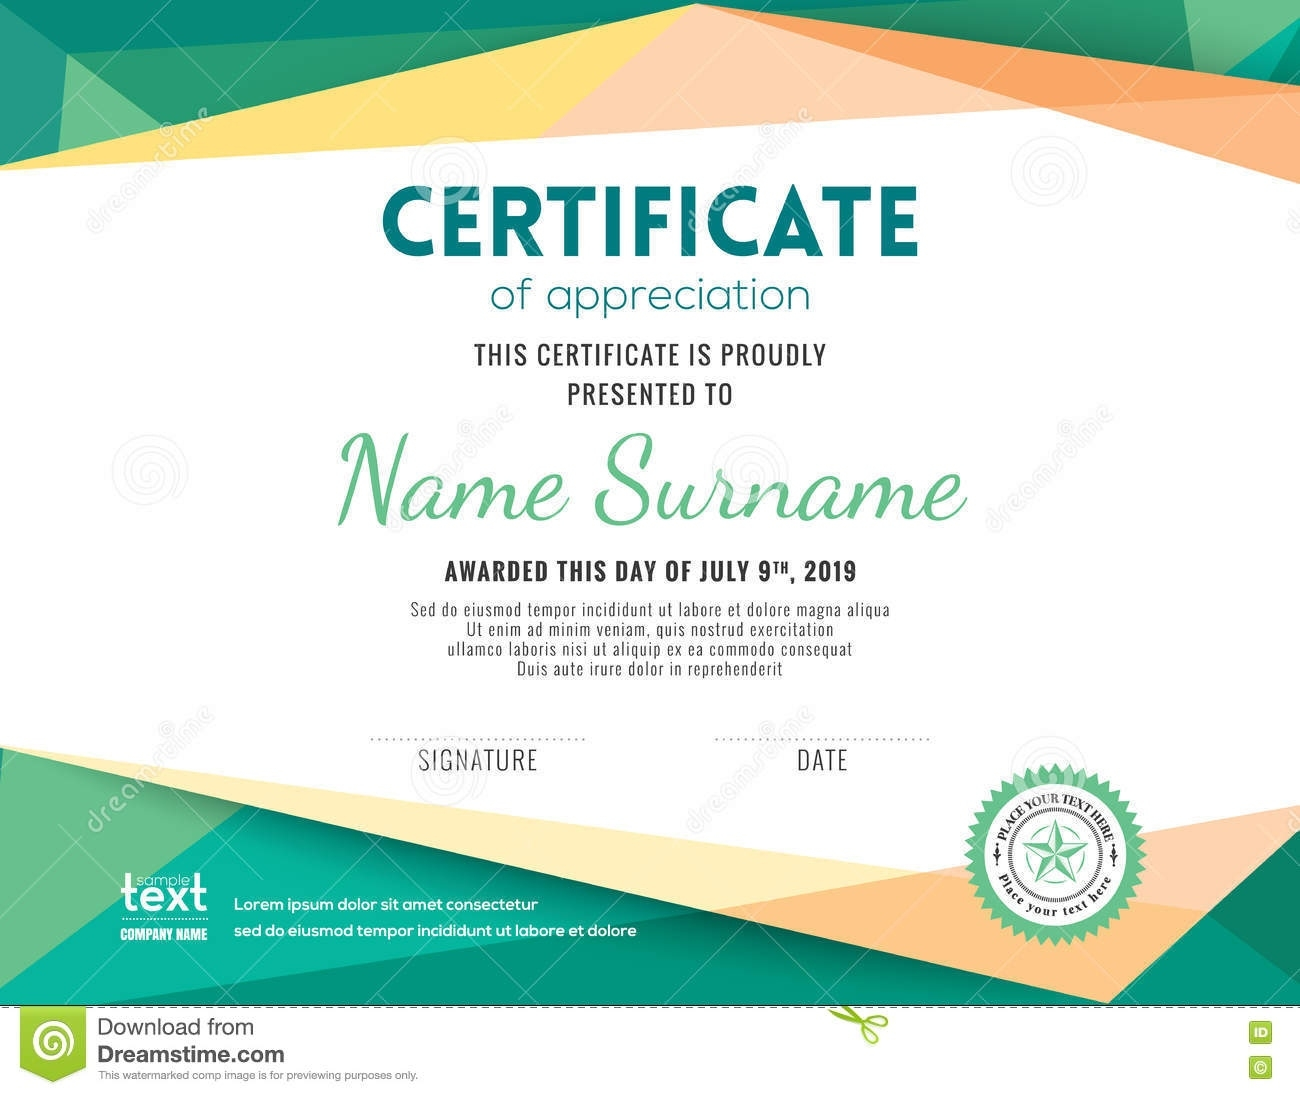 Certificate Background Vector Png 6.